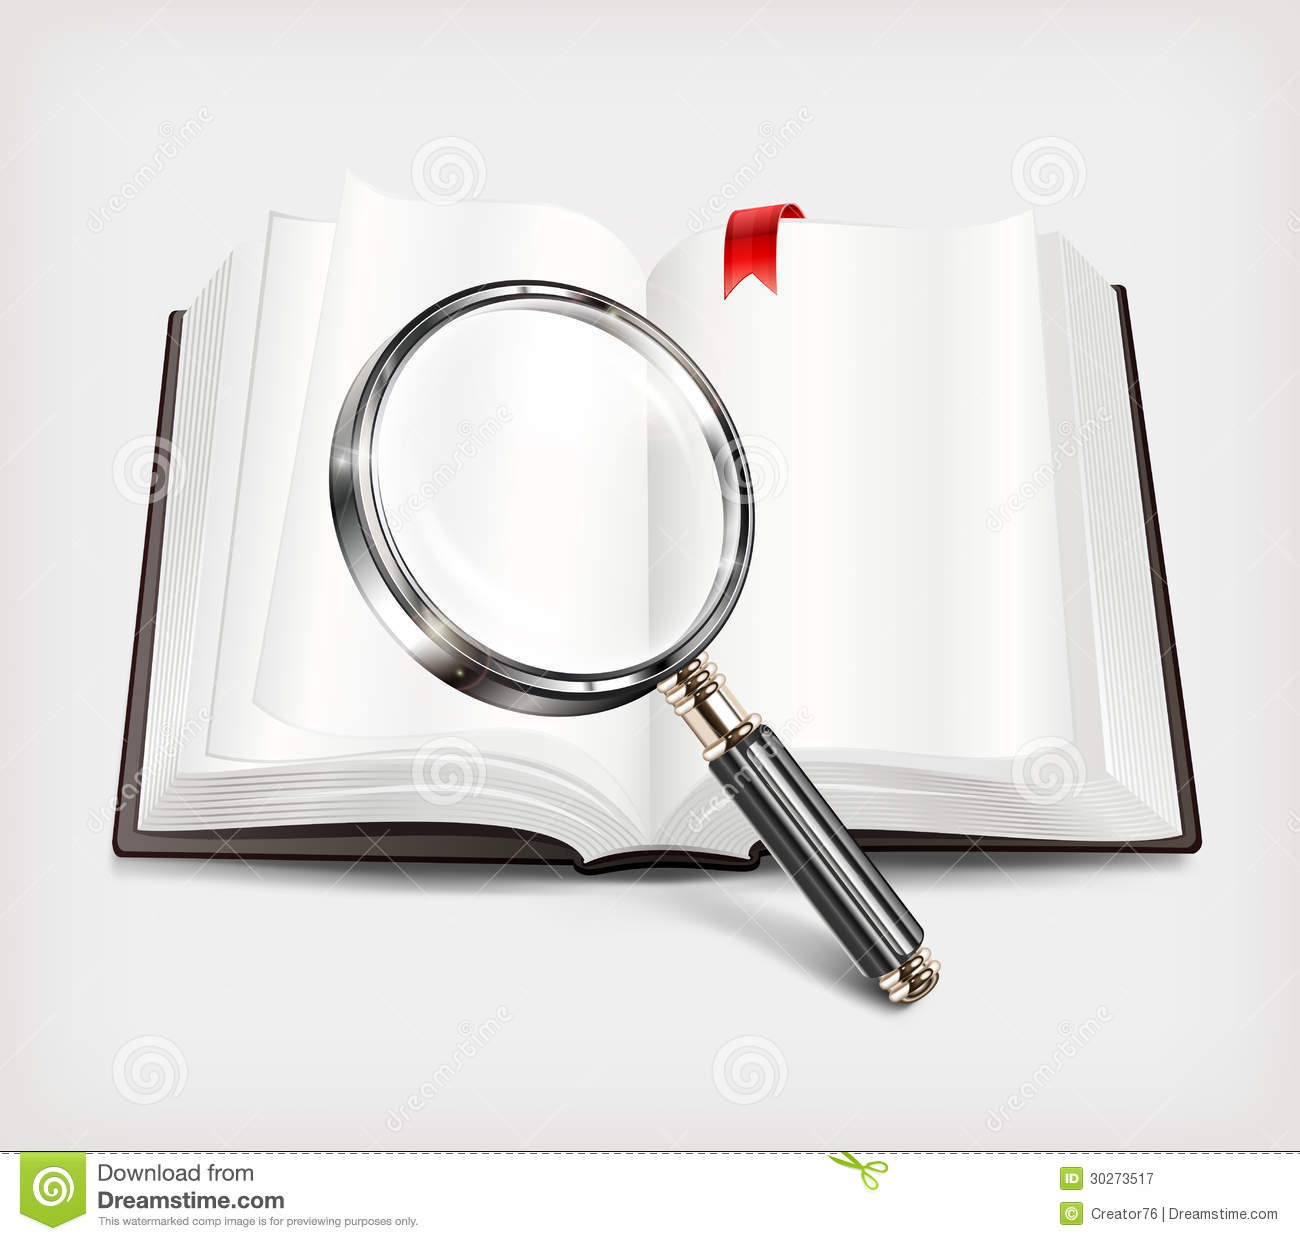 Free Images Book Magnifying Glass Illustrations